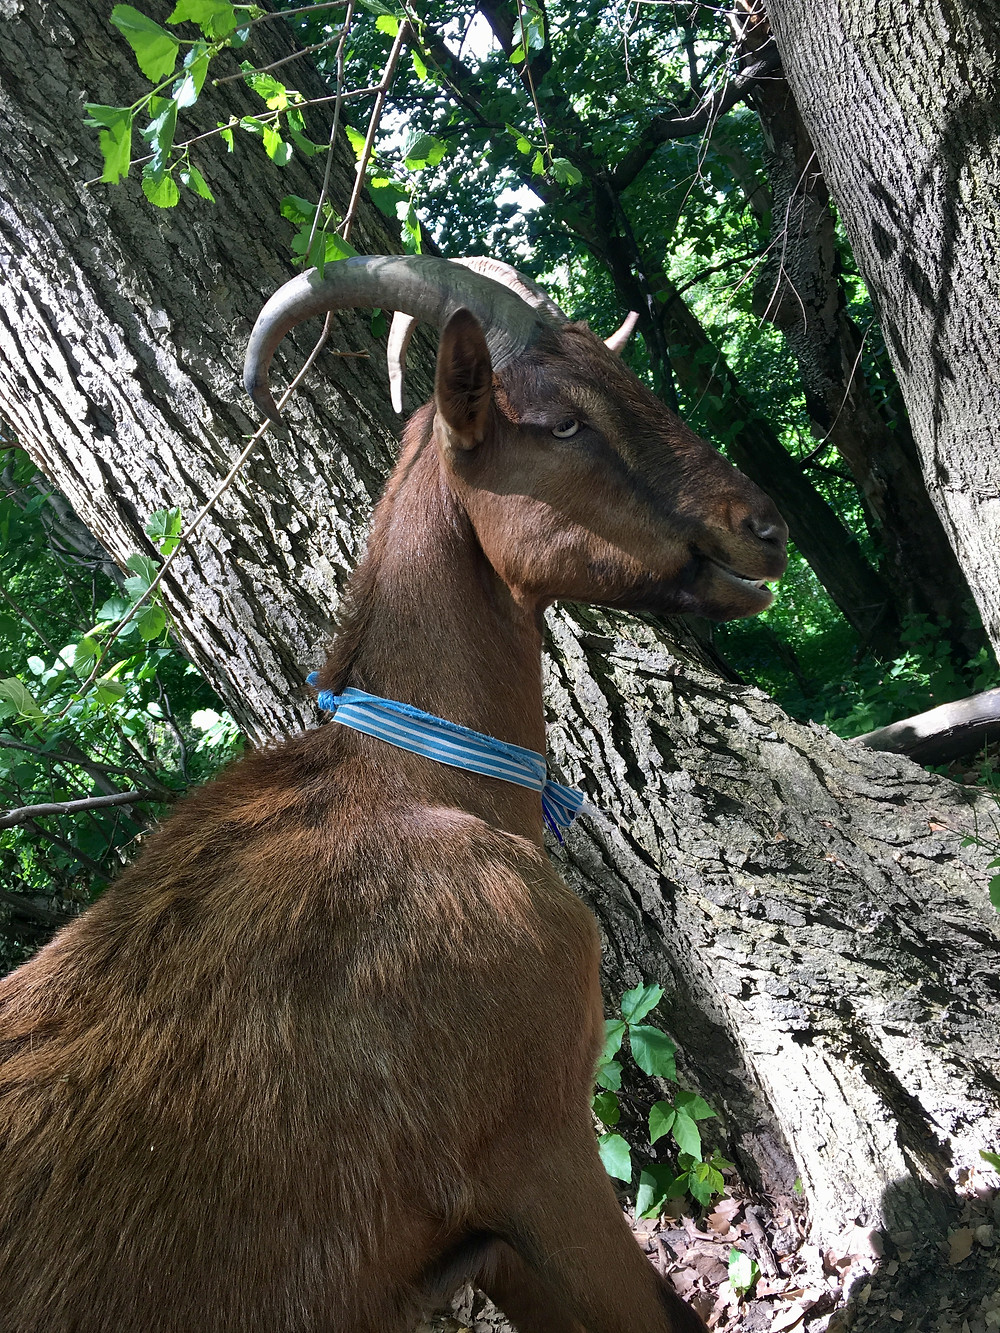 A goat in New York City's Riverside Park explores its new summer home